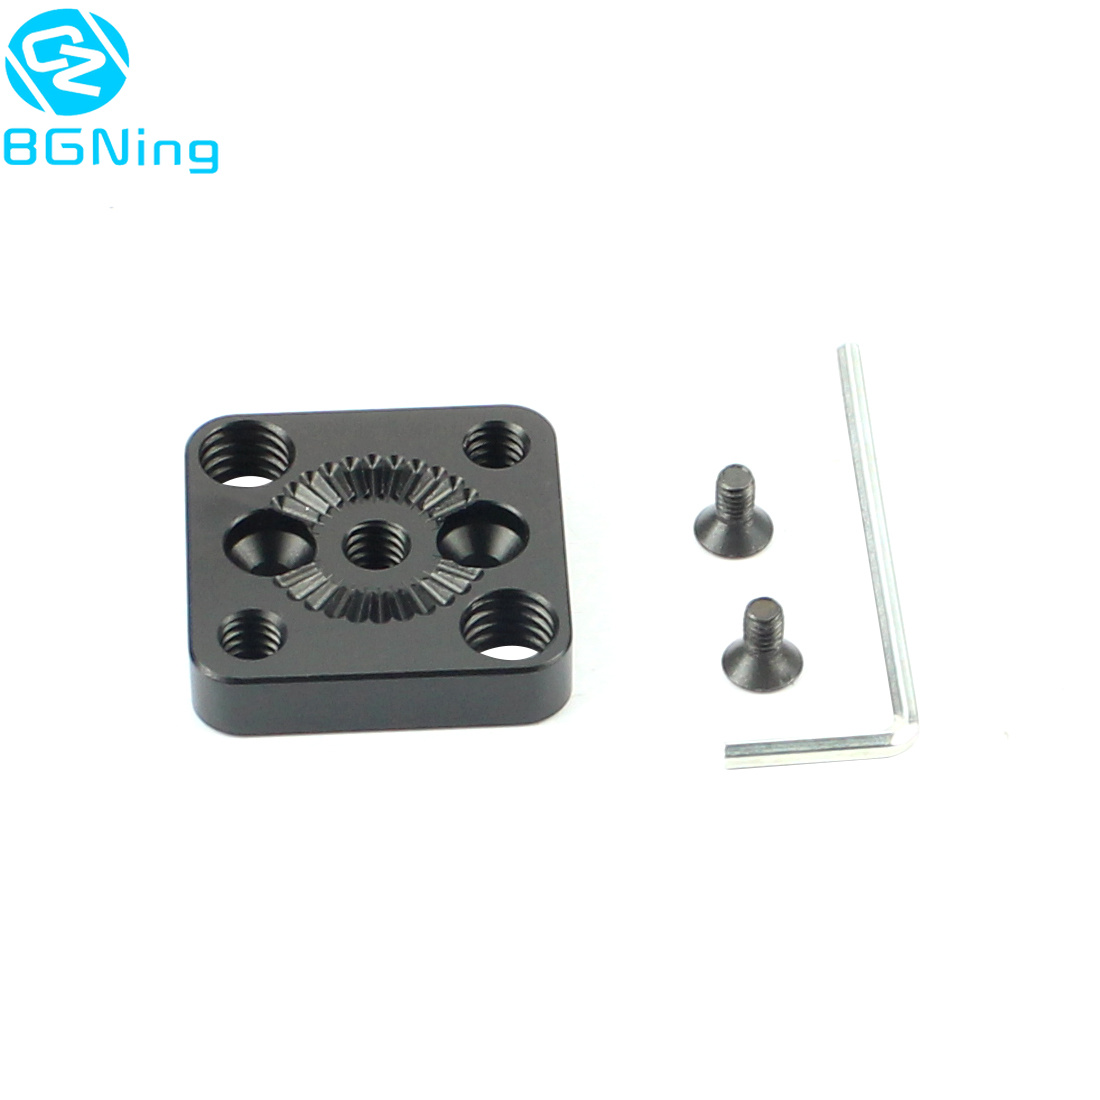 Handle Gimbal External Mounting Plate Quick Release For Arri Standard Rosette 1/4 Screw Monitor Holder M4 To 3/8 For DJI Ronin S